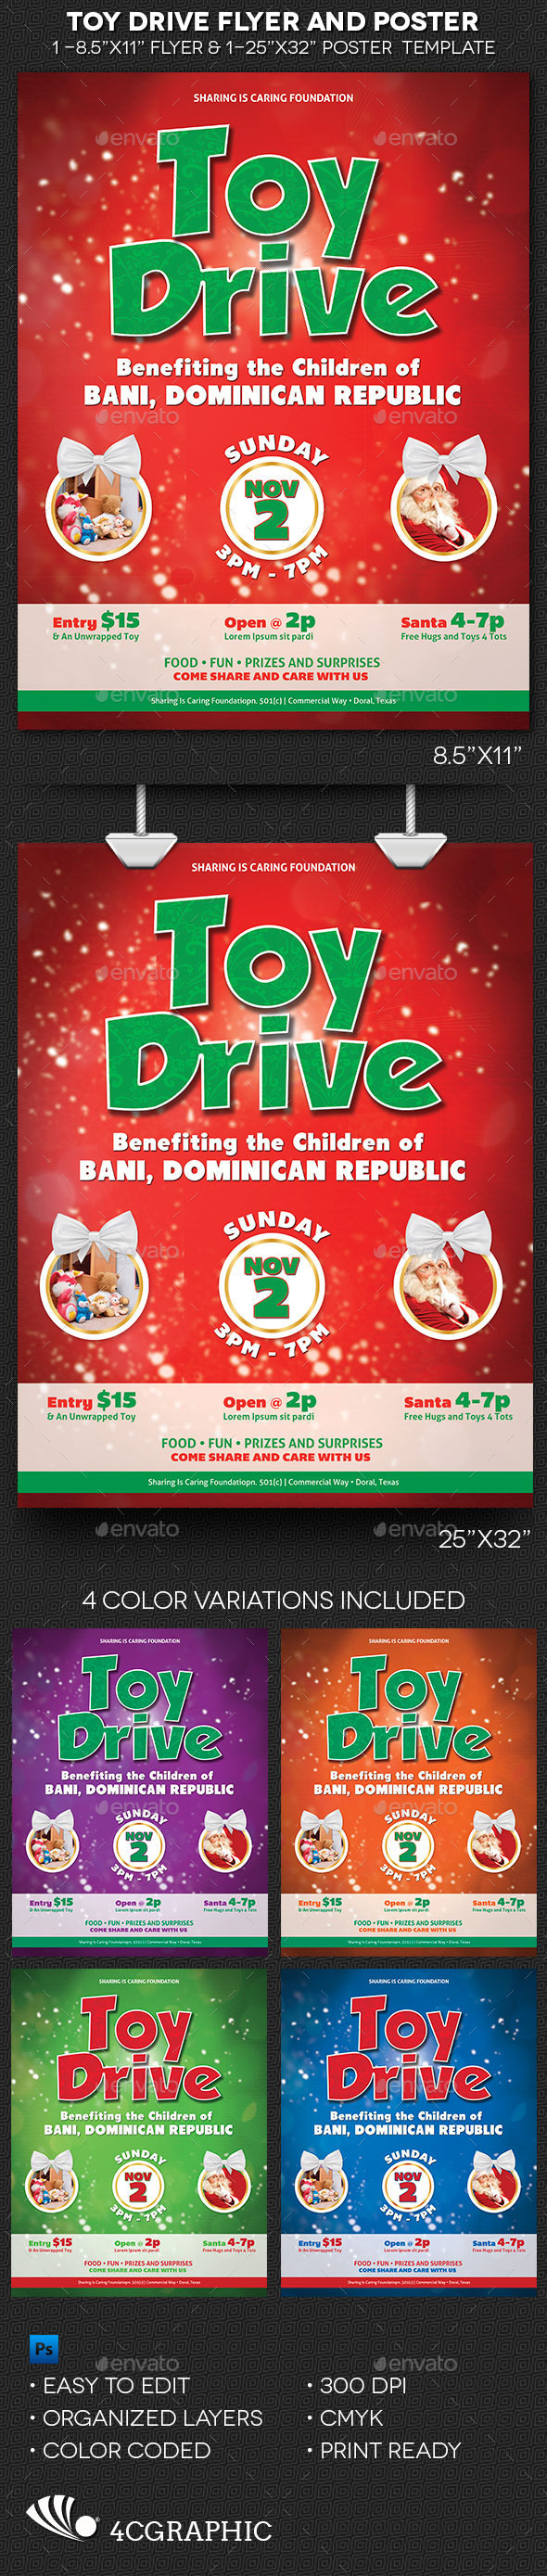 Toy Drive Flyer And Poster Template On Behance